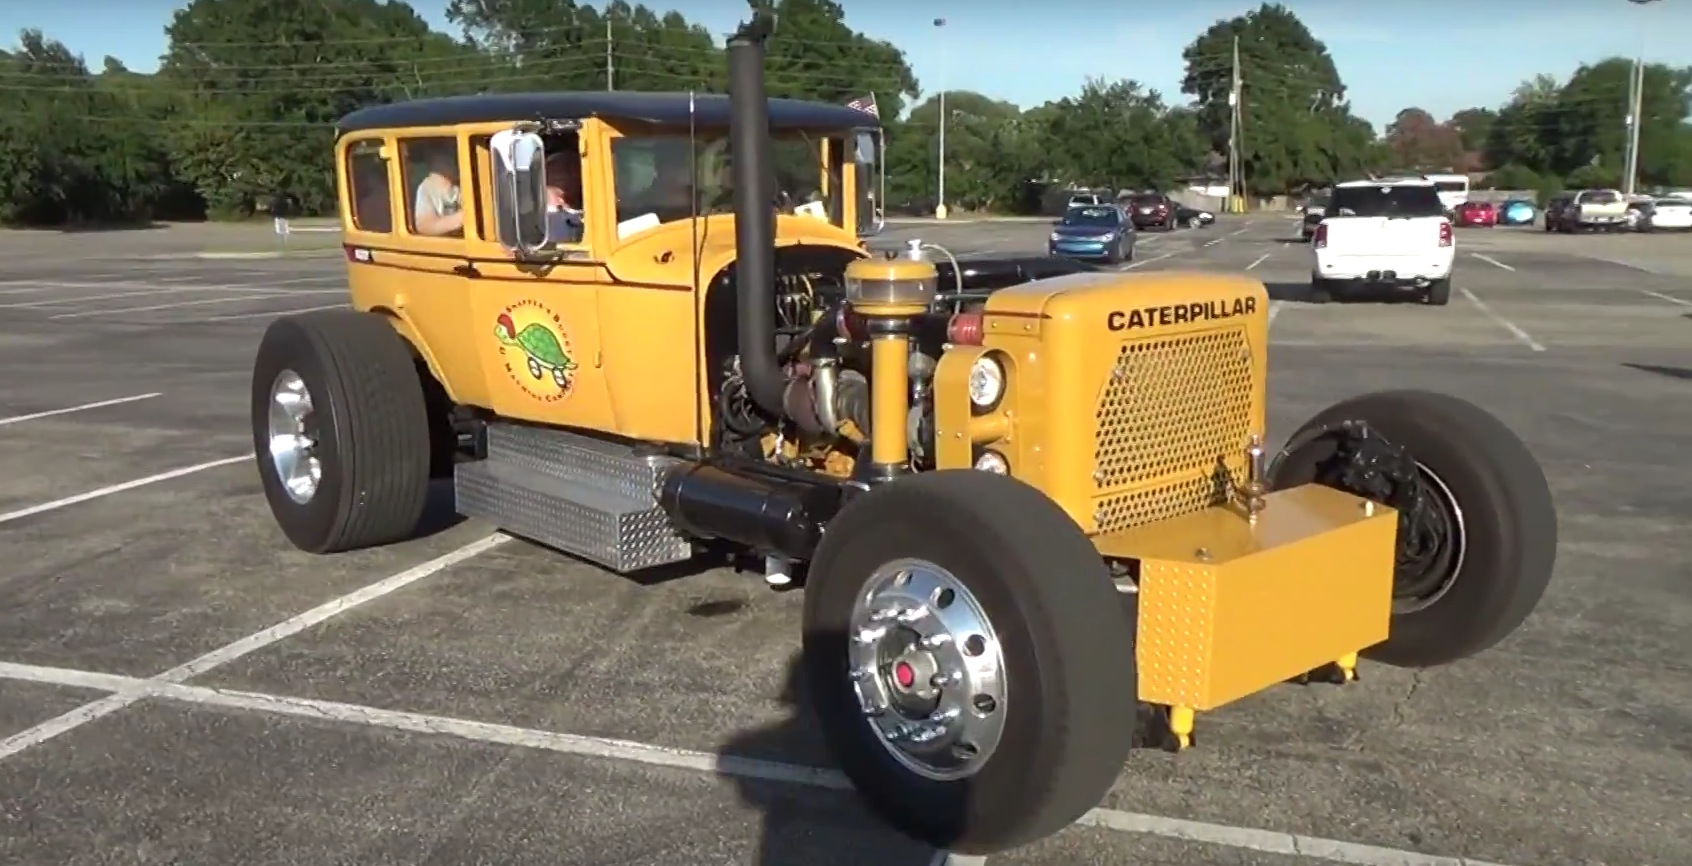 Caterpillar Hot Rod By Snapper Is Built On A Large Scale